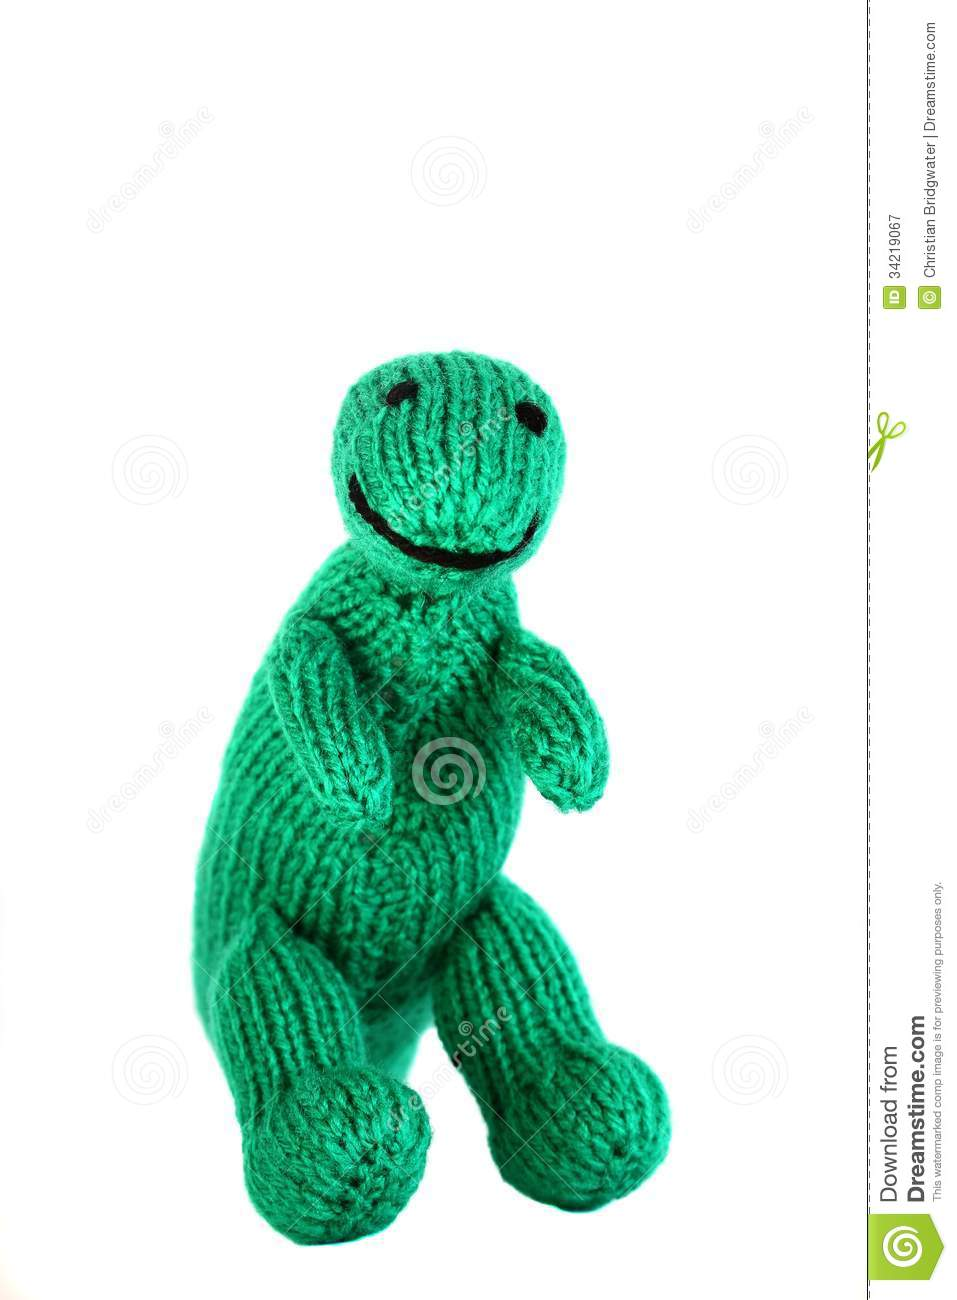 Knitted Toy Dinosaur C Royalty Free Stock Photography - Image: 34219067